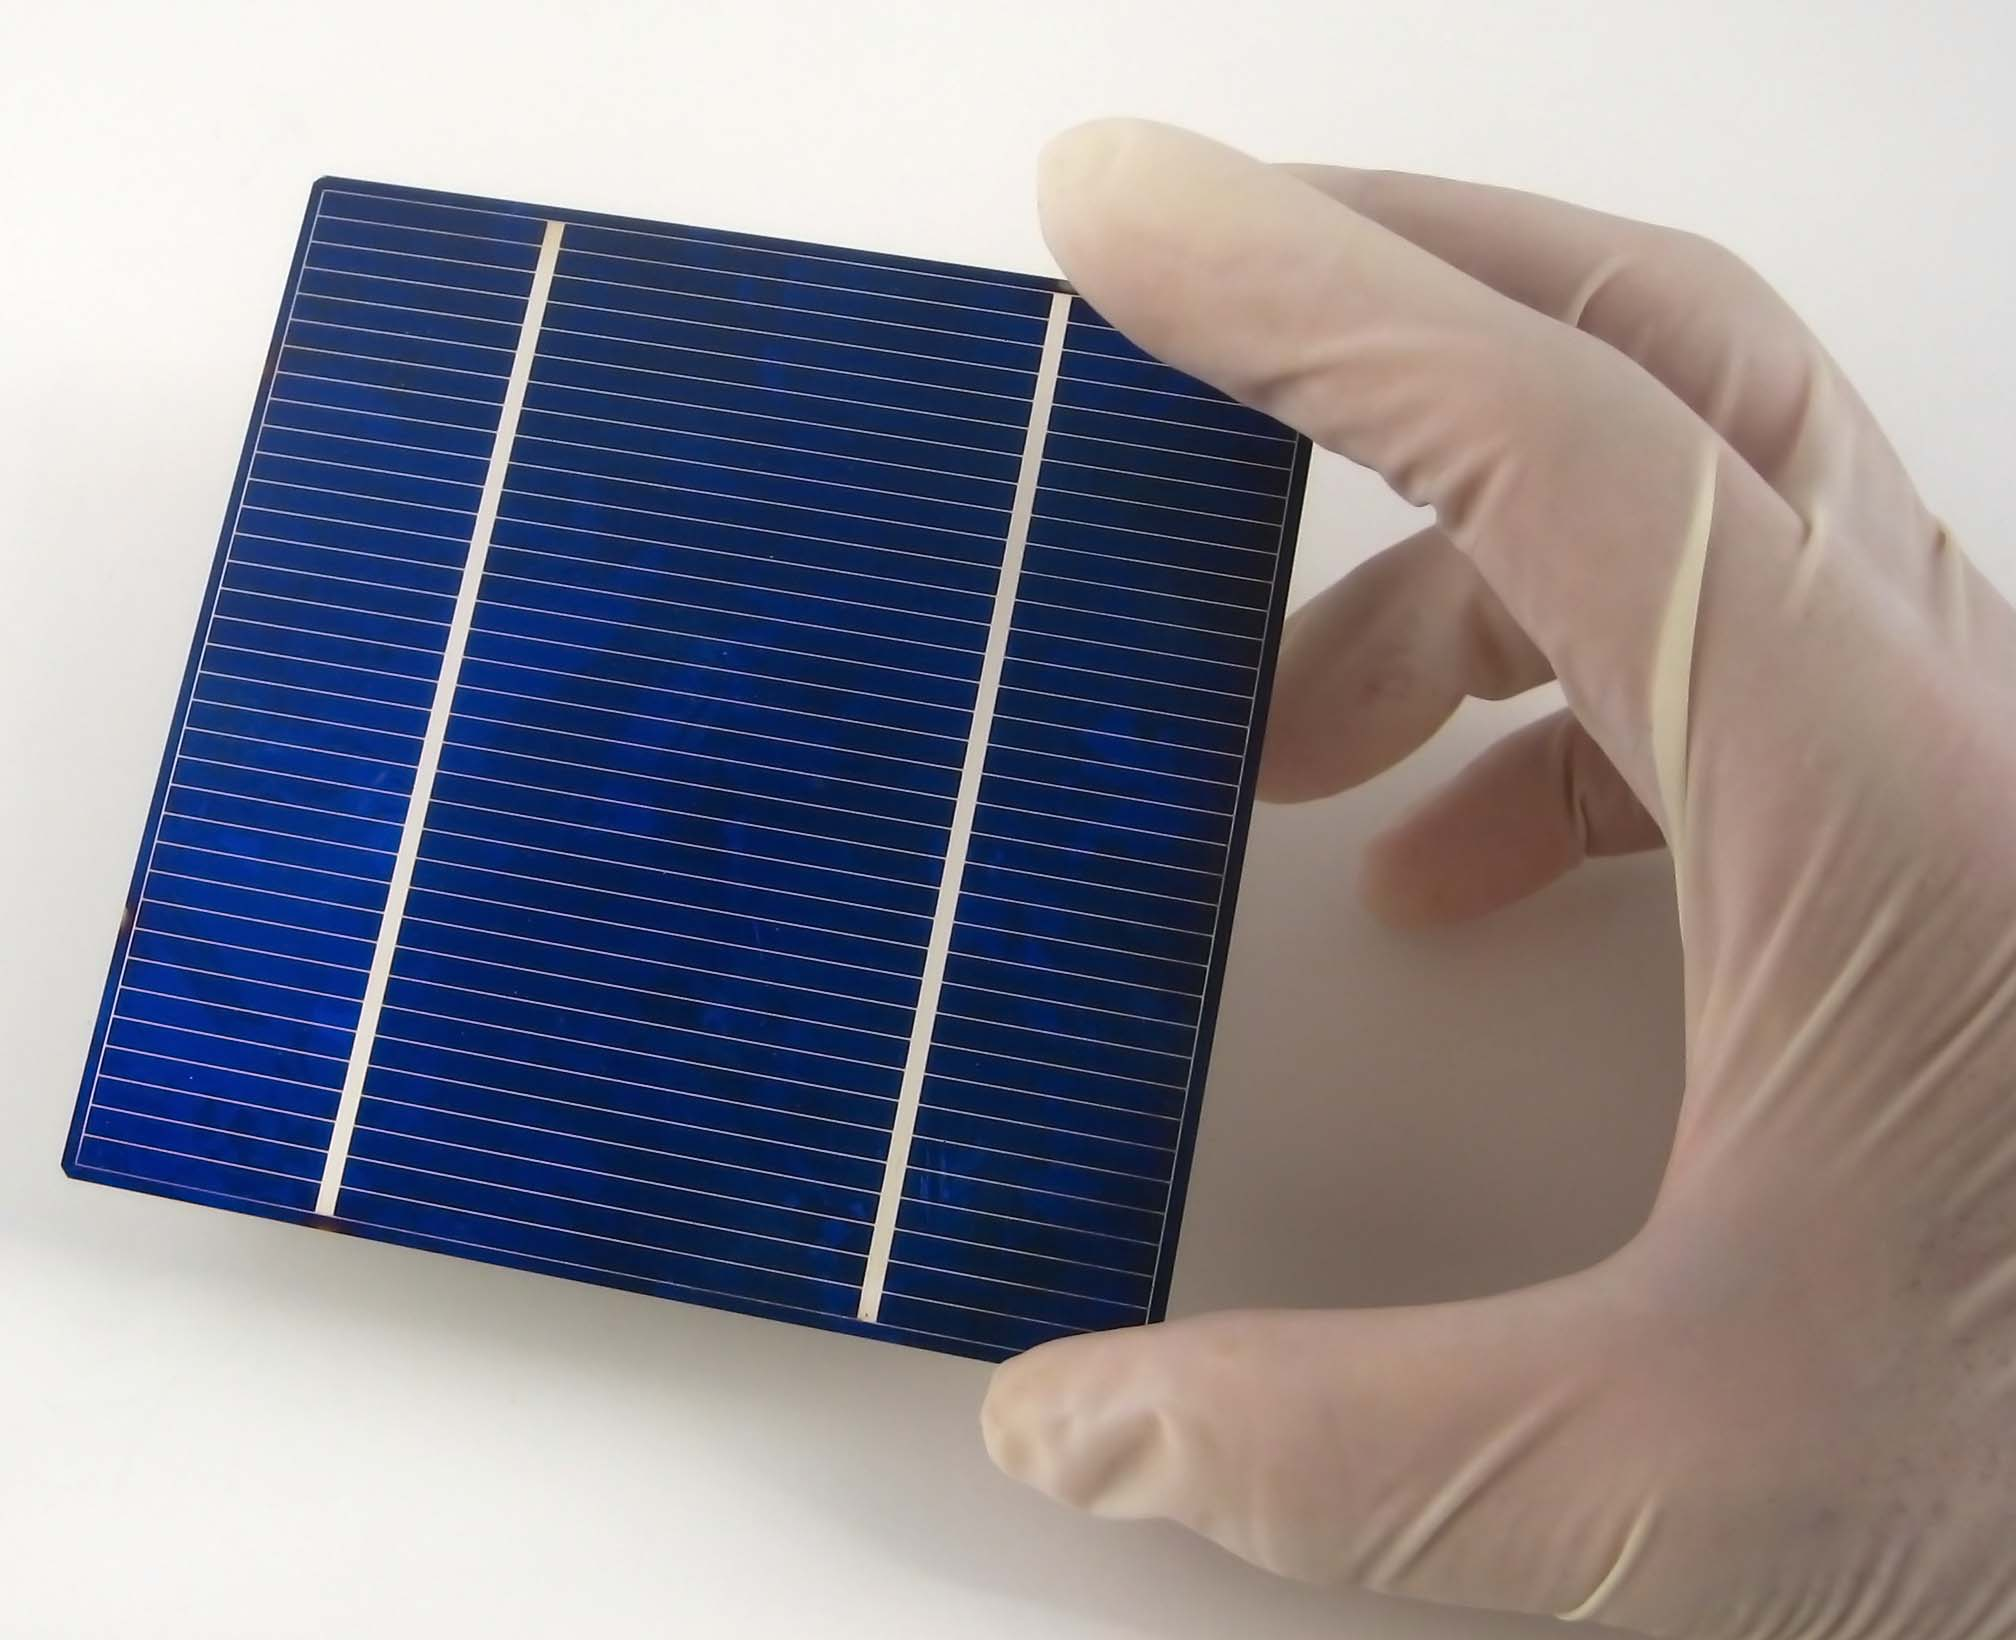 Reserarch and development in solar cells